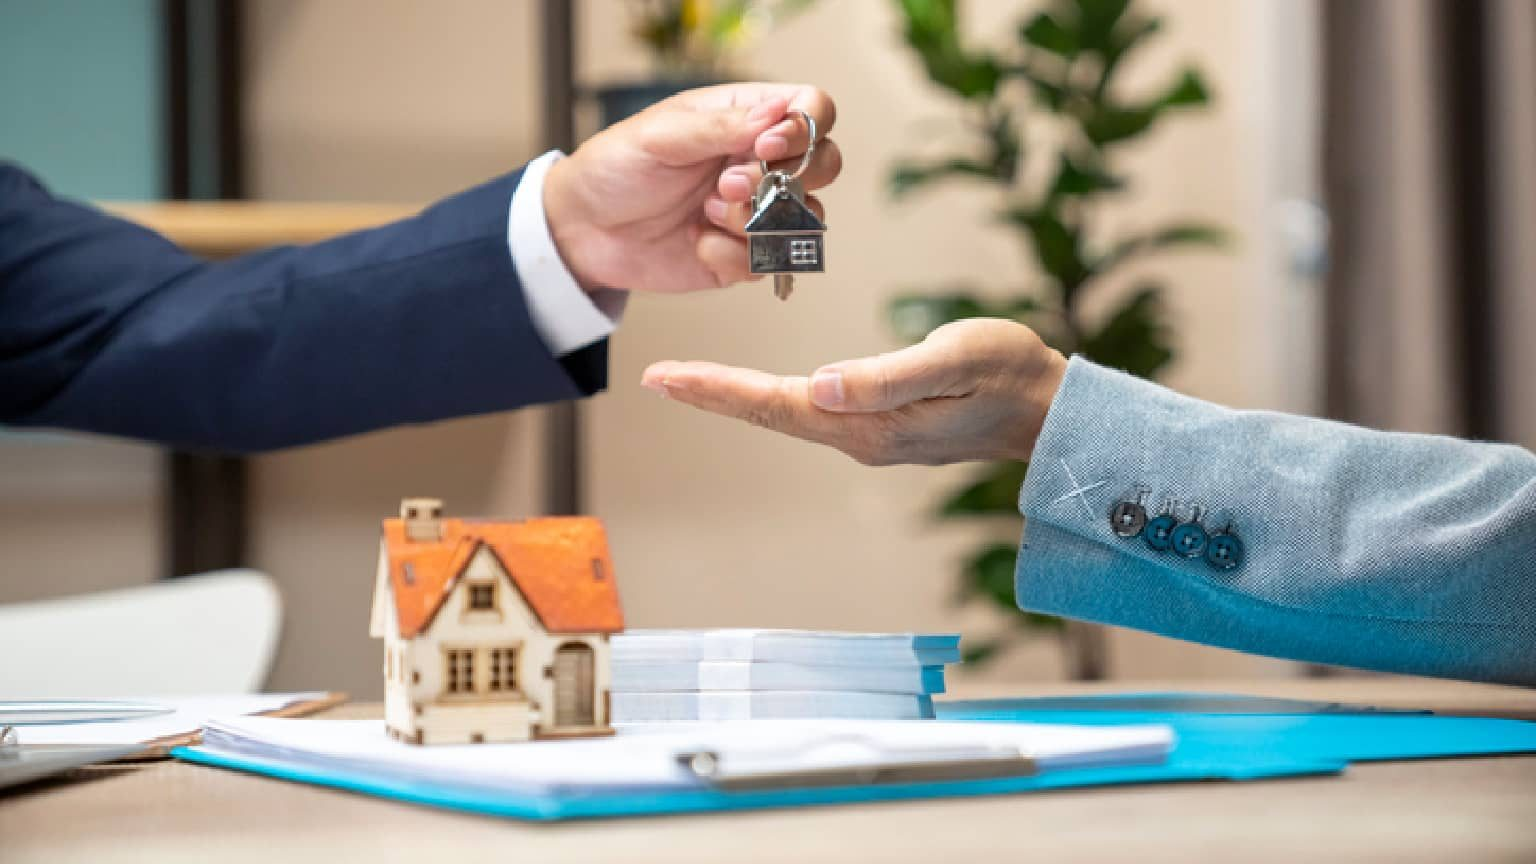 a person handing someone else keys to a home